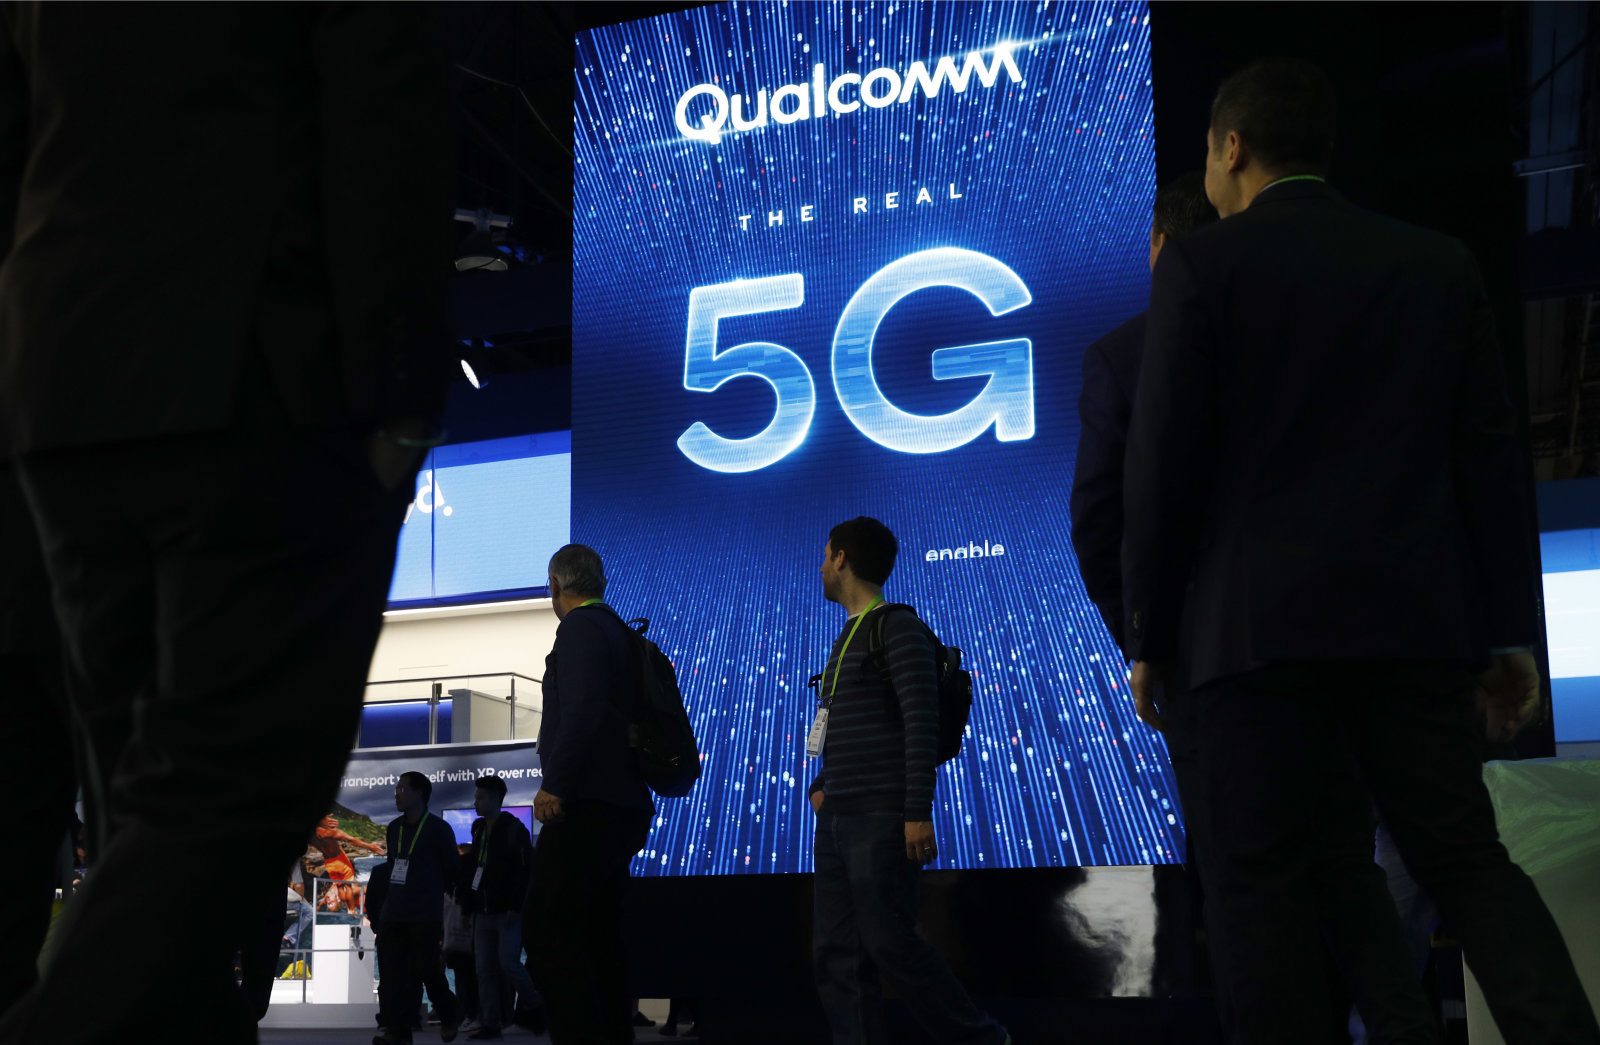 FILE- In this Jan. 9, 2019, file photo a sign advertises 5G at the Qualcomm booth at CES International in Las Vegas. Qualcomm and Apple drove declines in technology stocks on Wednesday, May 22. Qualcomm plunged following a federal judge's ruling against the chipmaker in an antitrust case.